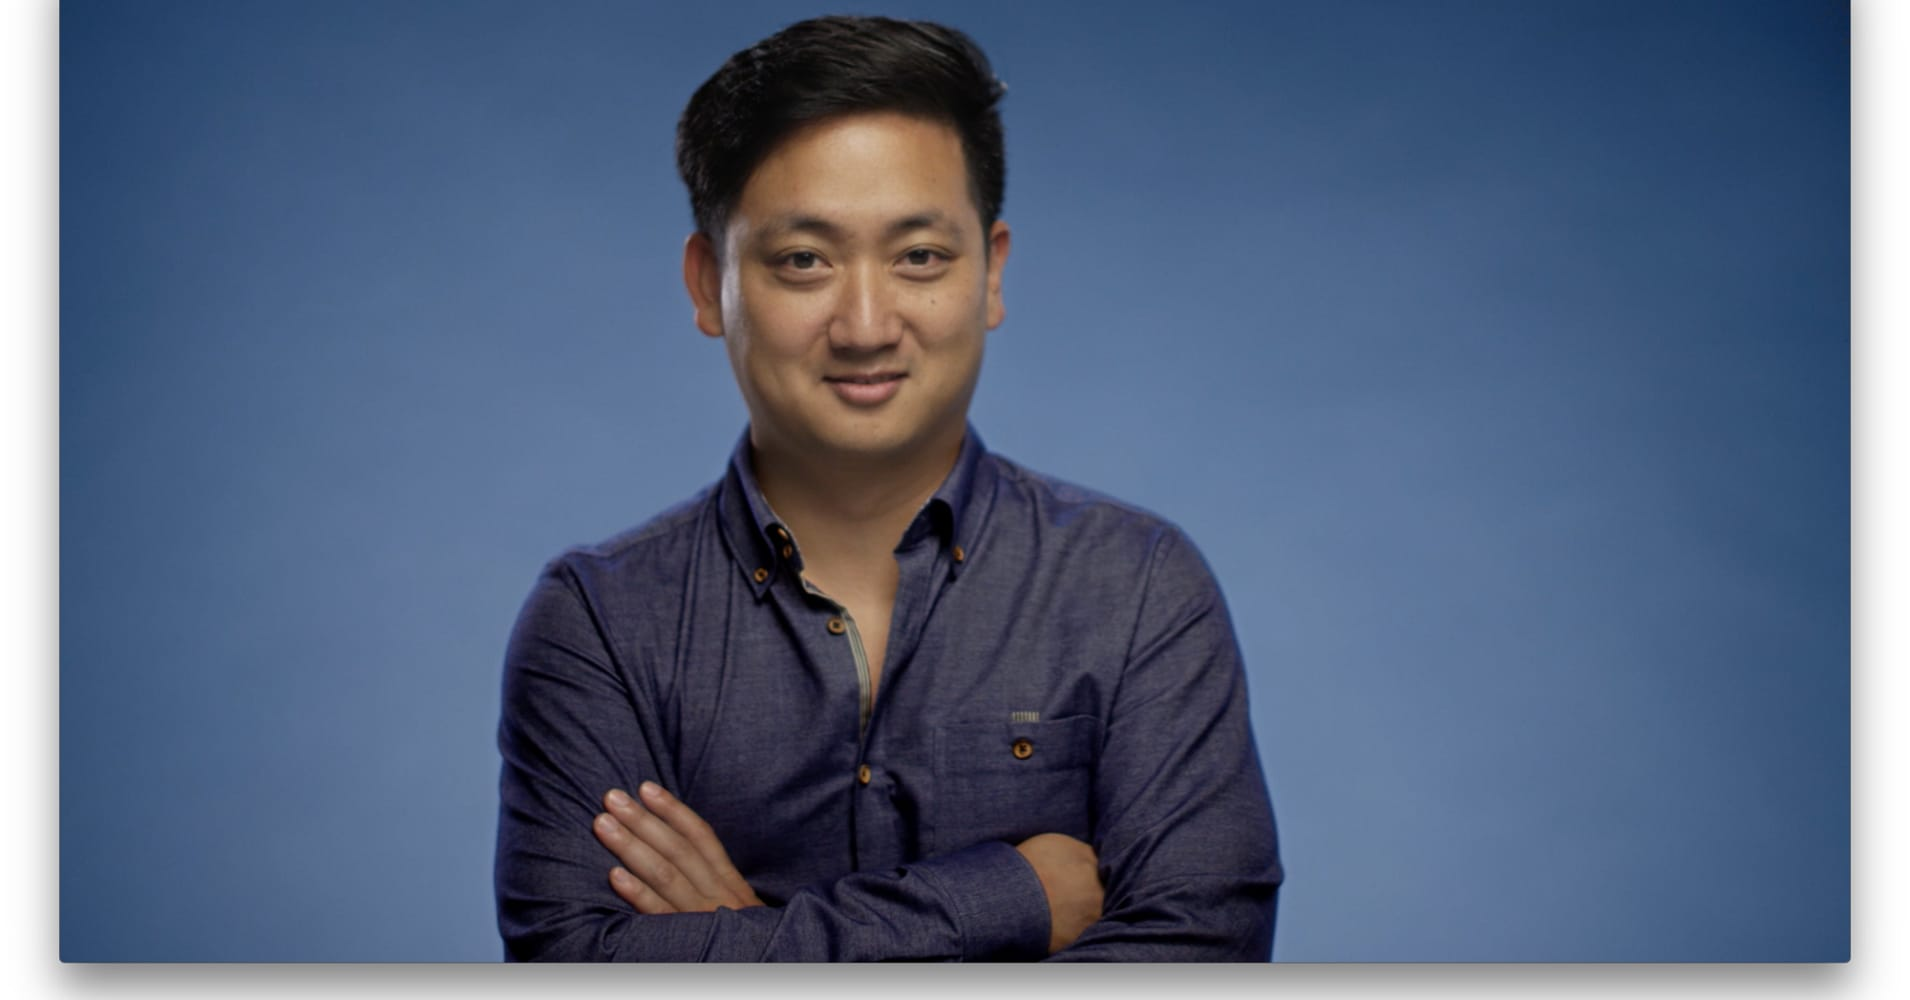 CEO Tim Chen founded NerdWallet with $800 after being laid off in the 2008 financial crisis — now it's worth $500 million